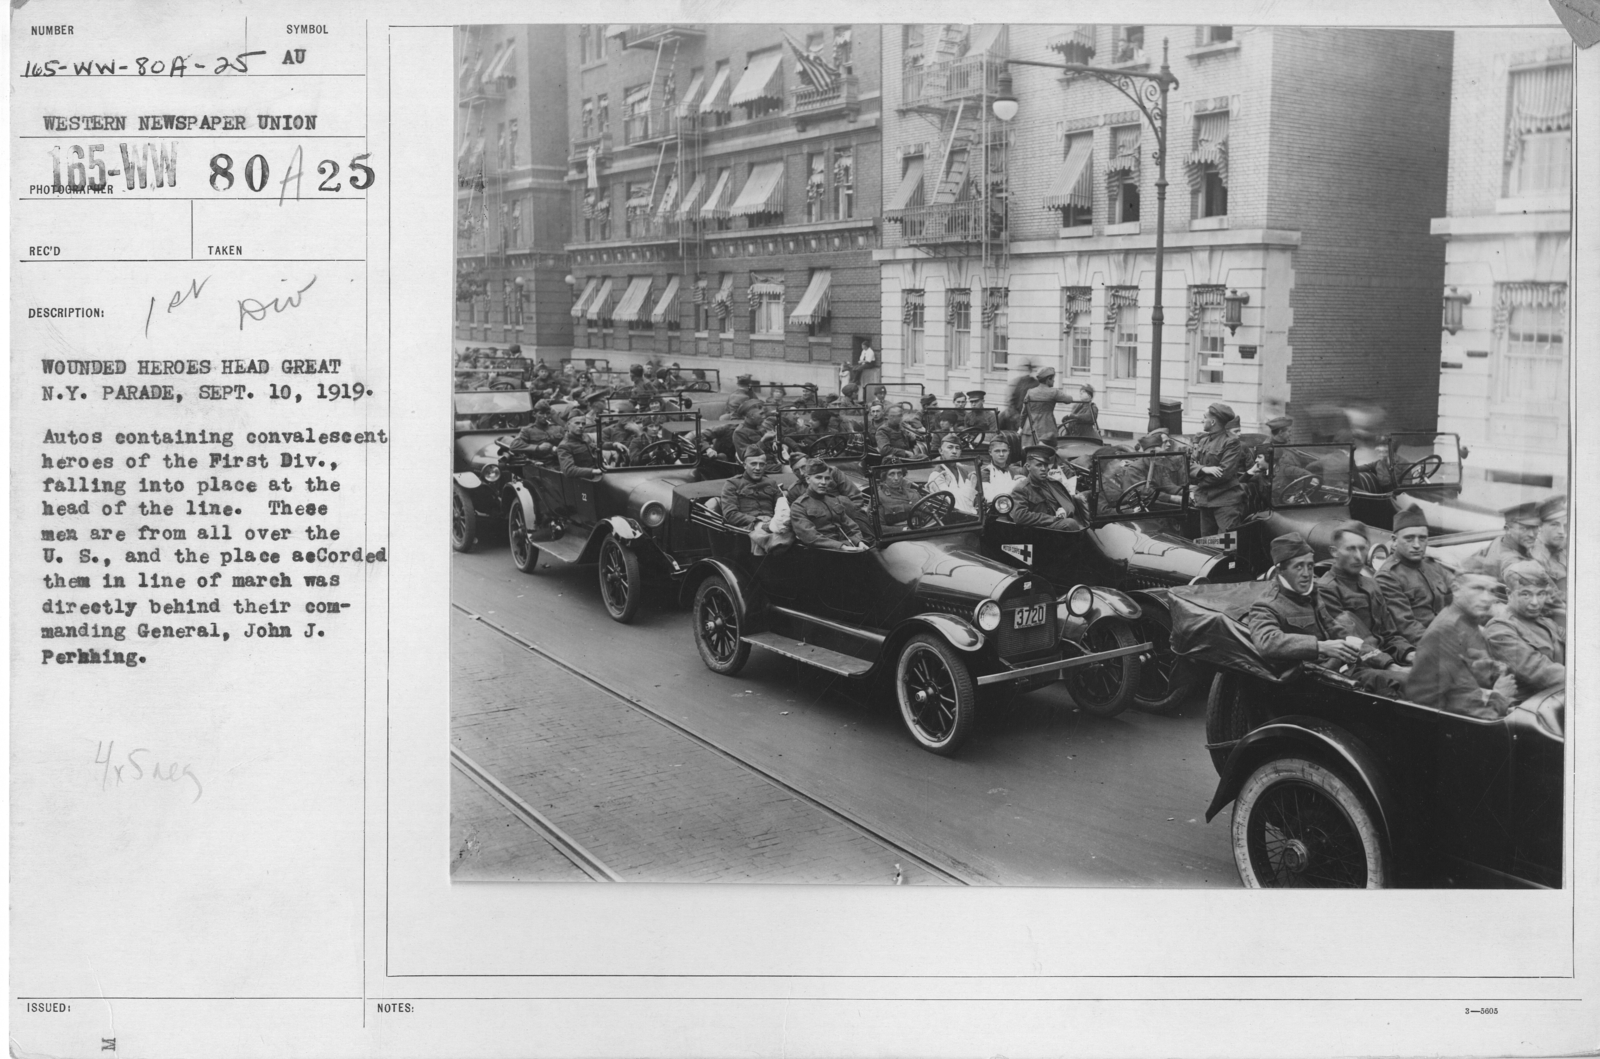 Ceremonies - Demobilization - Wounded heroes head Great N.Y. Parade, Sept. 10, 1919. Autos containing convalescent heroes of the First Div., falling into place at the head of the line. These men are from all over the U.S., and the place accorded them in line of march was directly behind their Commanding General, John J. Pershing